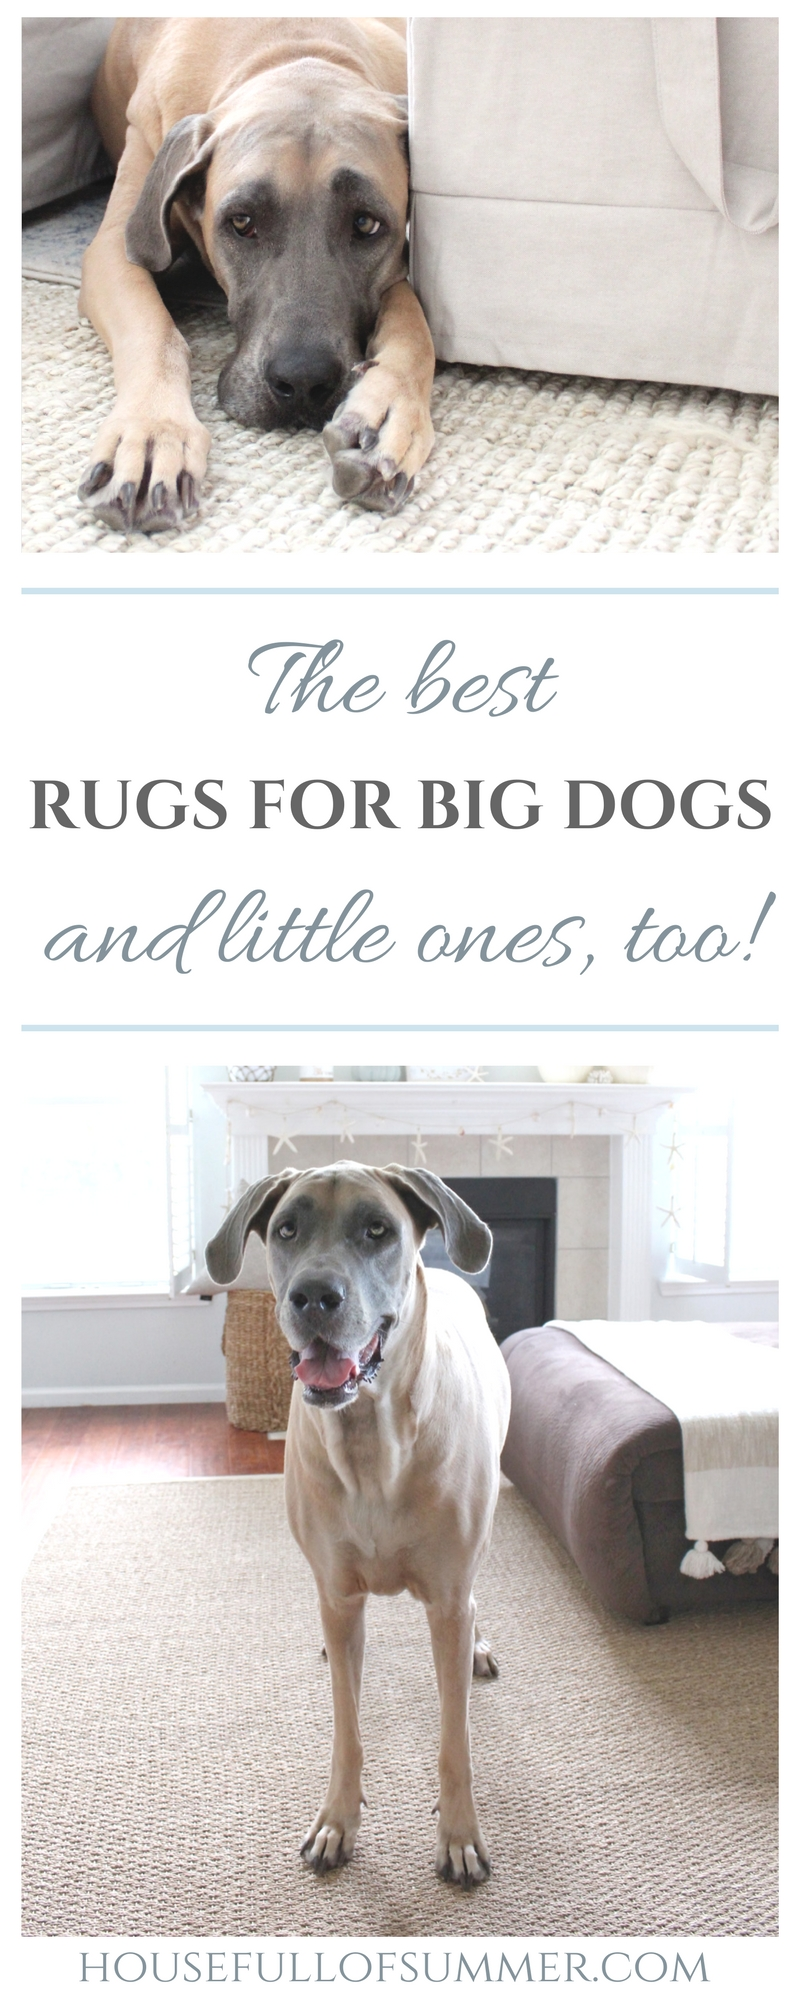 The Best Rugs for Big Dogs - and little ones, too! - House Full of Summer blog. durable rugs, area rugs, decorating with pets, dog friendly decor, home interior ideas, rugs that last, affordable rugs, neutral decor, coastal home